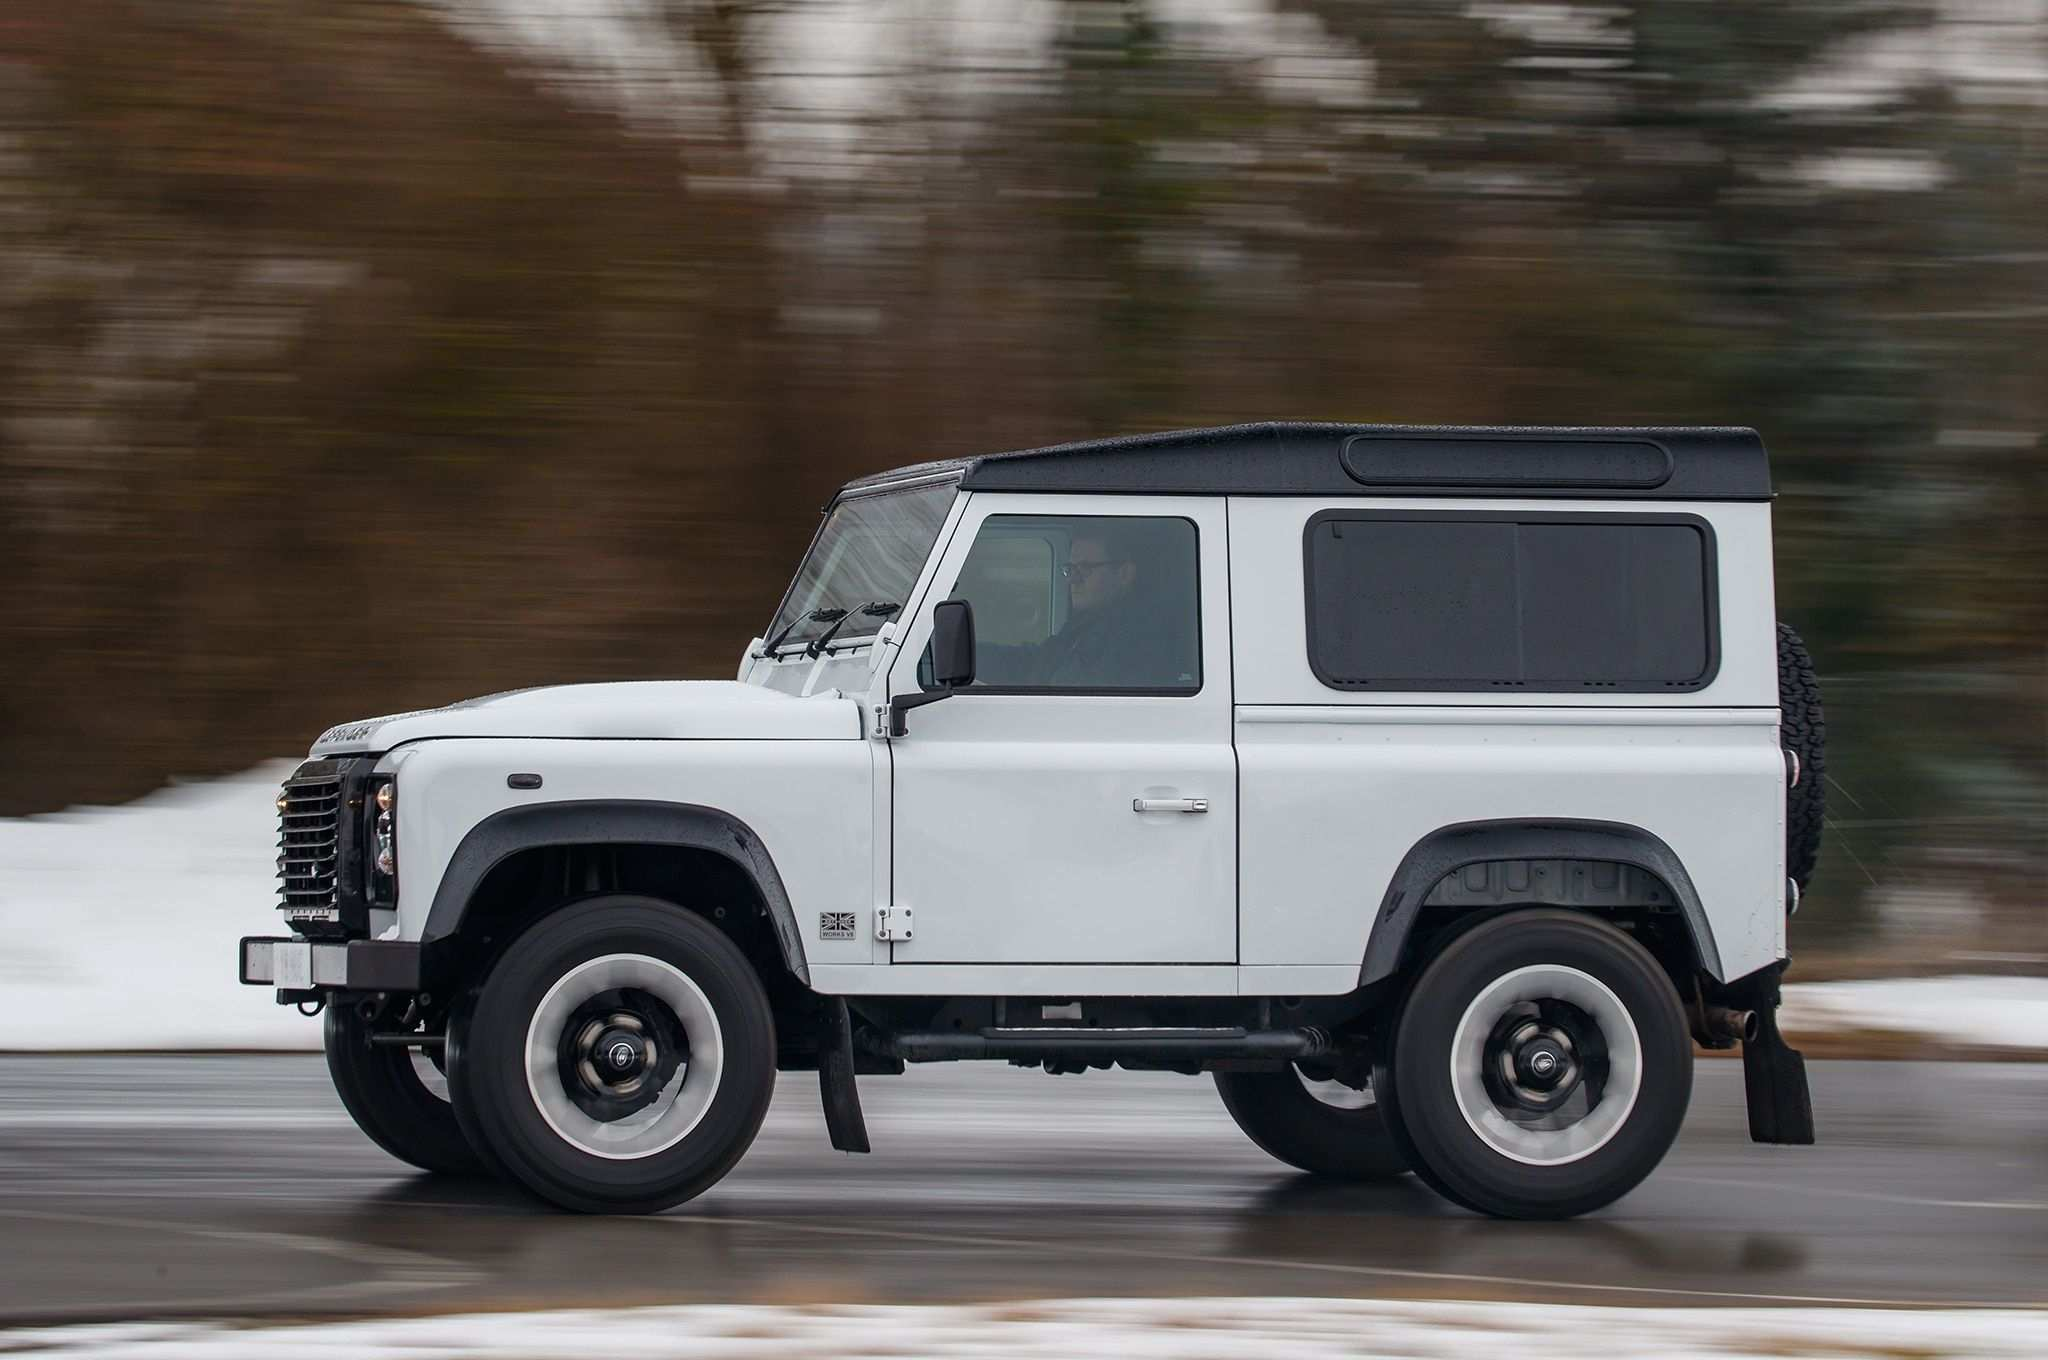 40 Great New Jeep Defender 2019 Release Date Rumors by New Jeep Defender 2019 Release Date